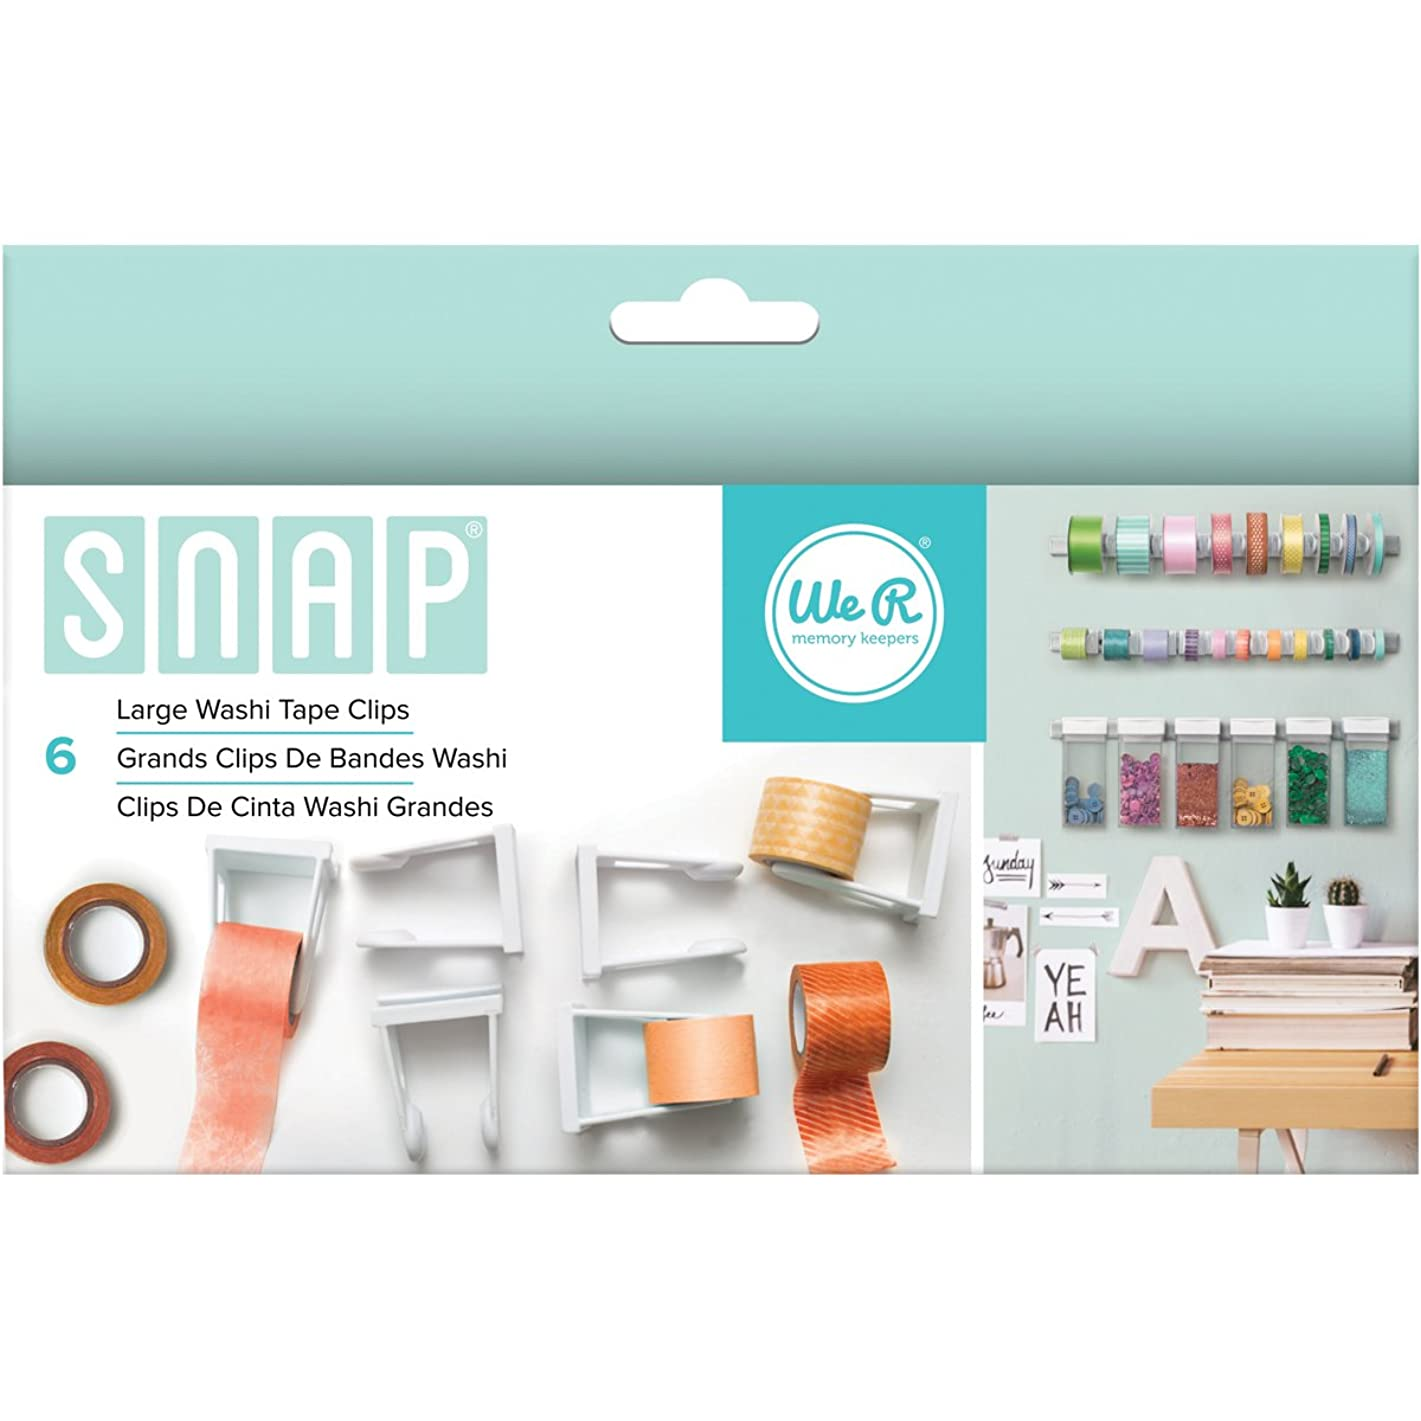 American Crafts 662590 6 Piece We R Memory Keepers Snap Storage Washi Tape Clips, Large